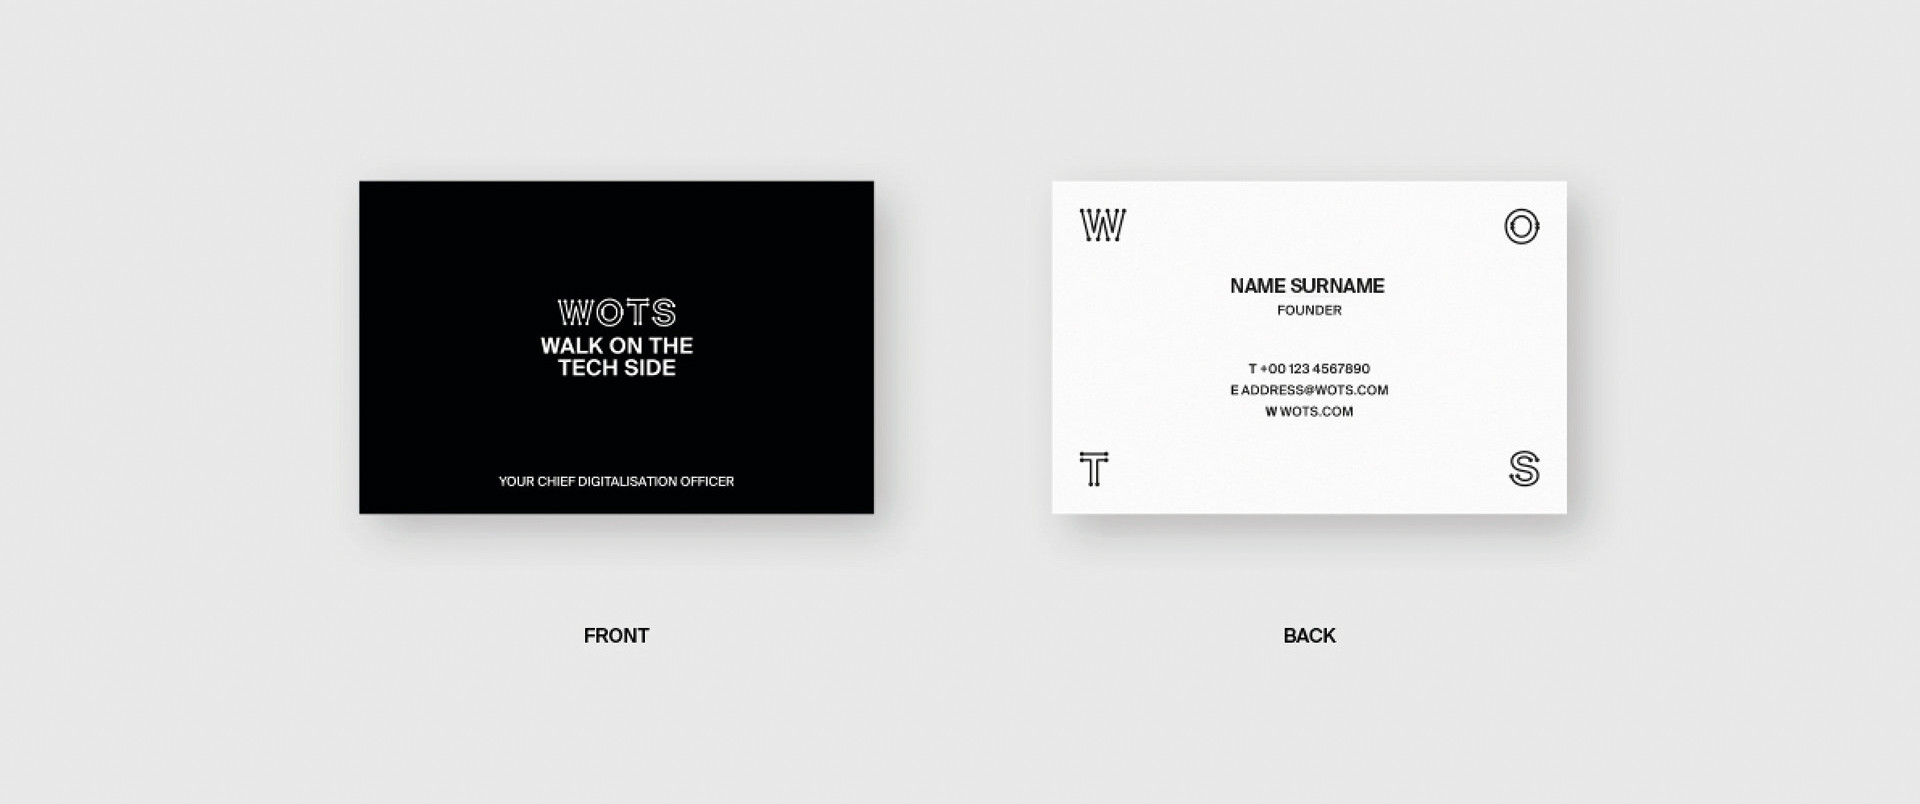 WOTS business cards branding